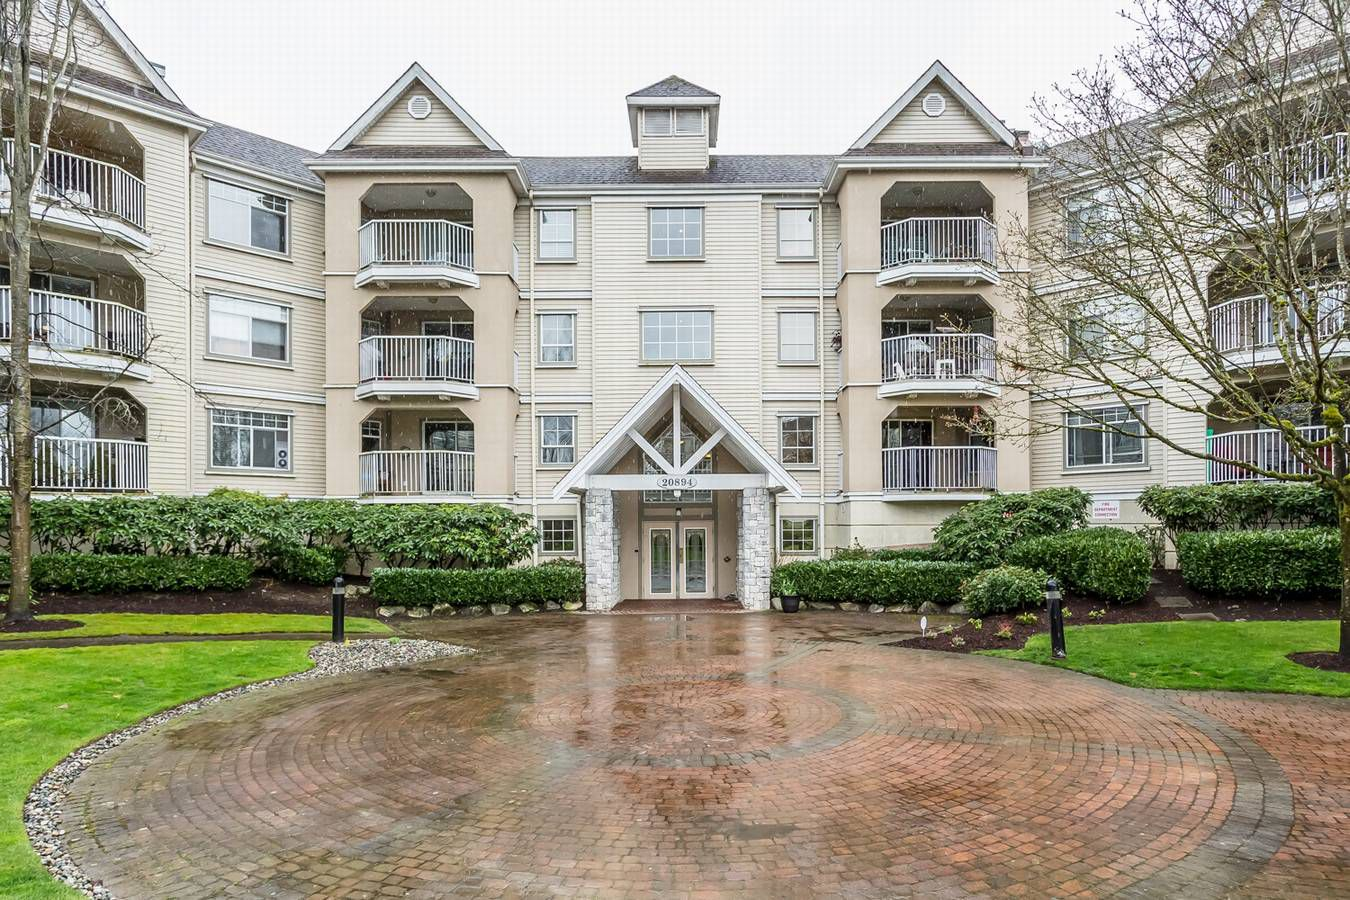 """Main Photo: 215 20894 57 Avenue in Langley: Langley City Condo for sale in """"BAYBERRY LANE"""" : MLS®# R2254851"""